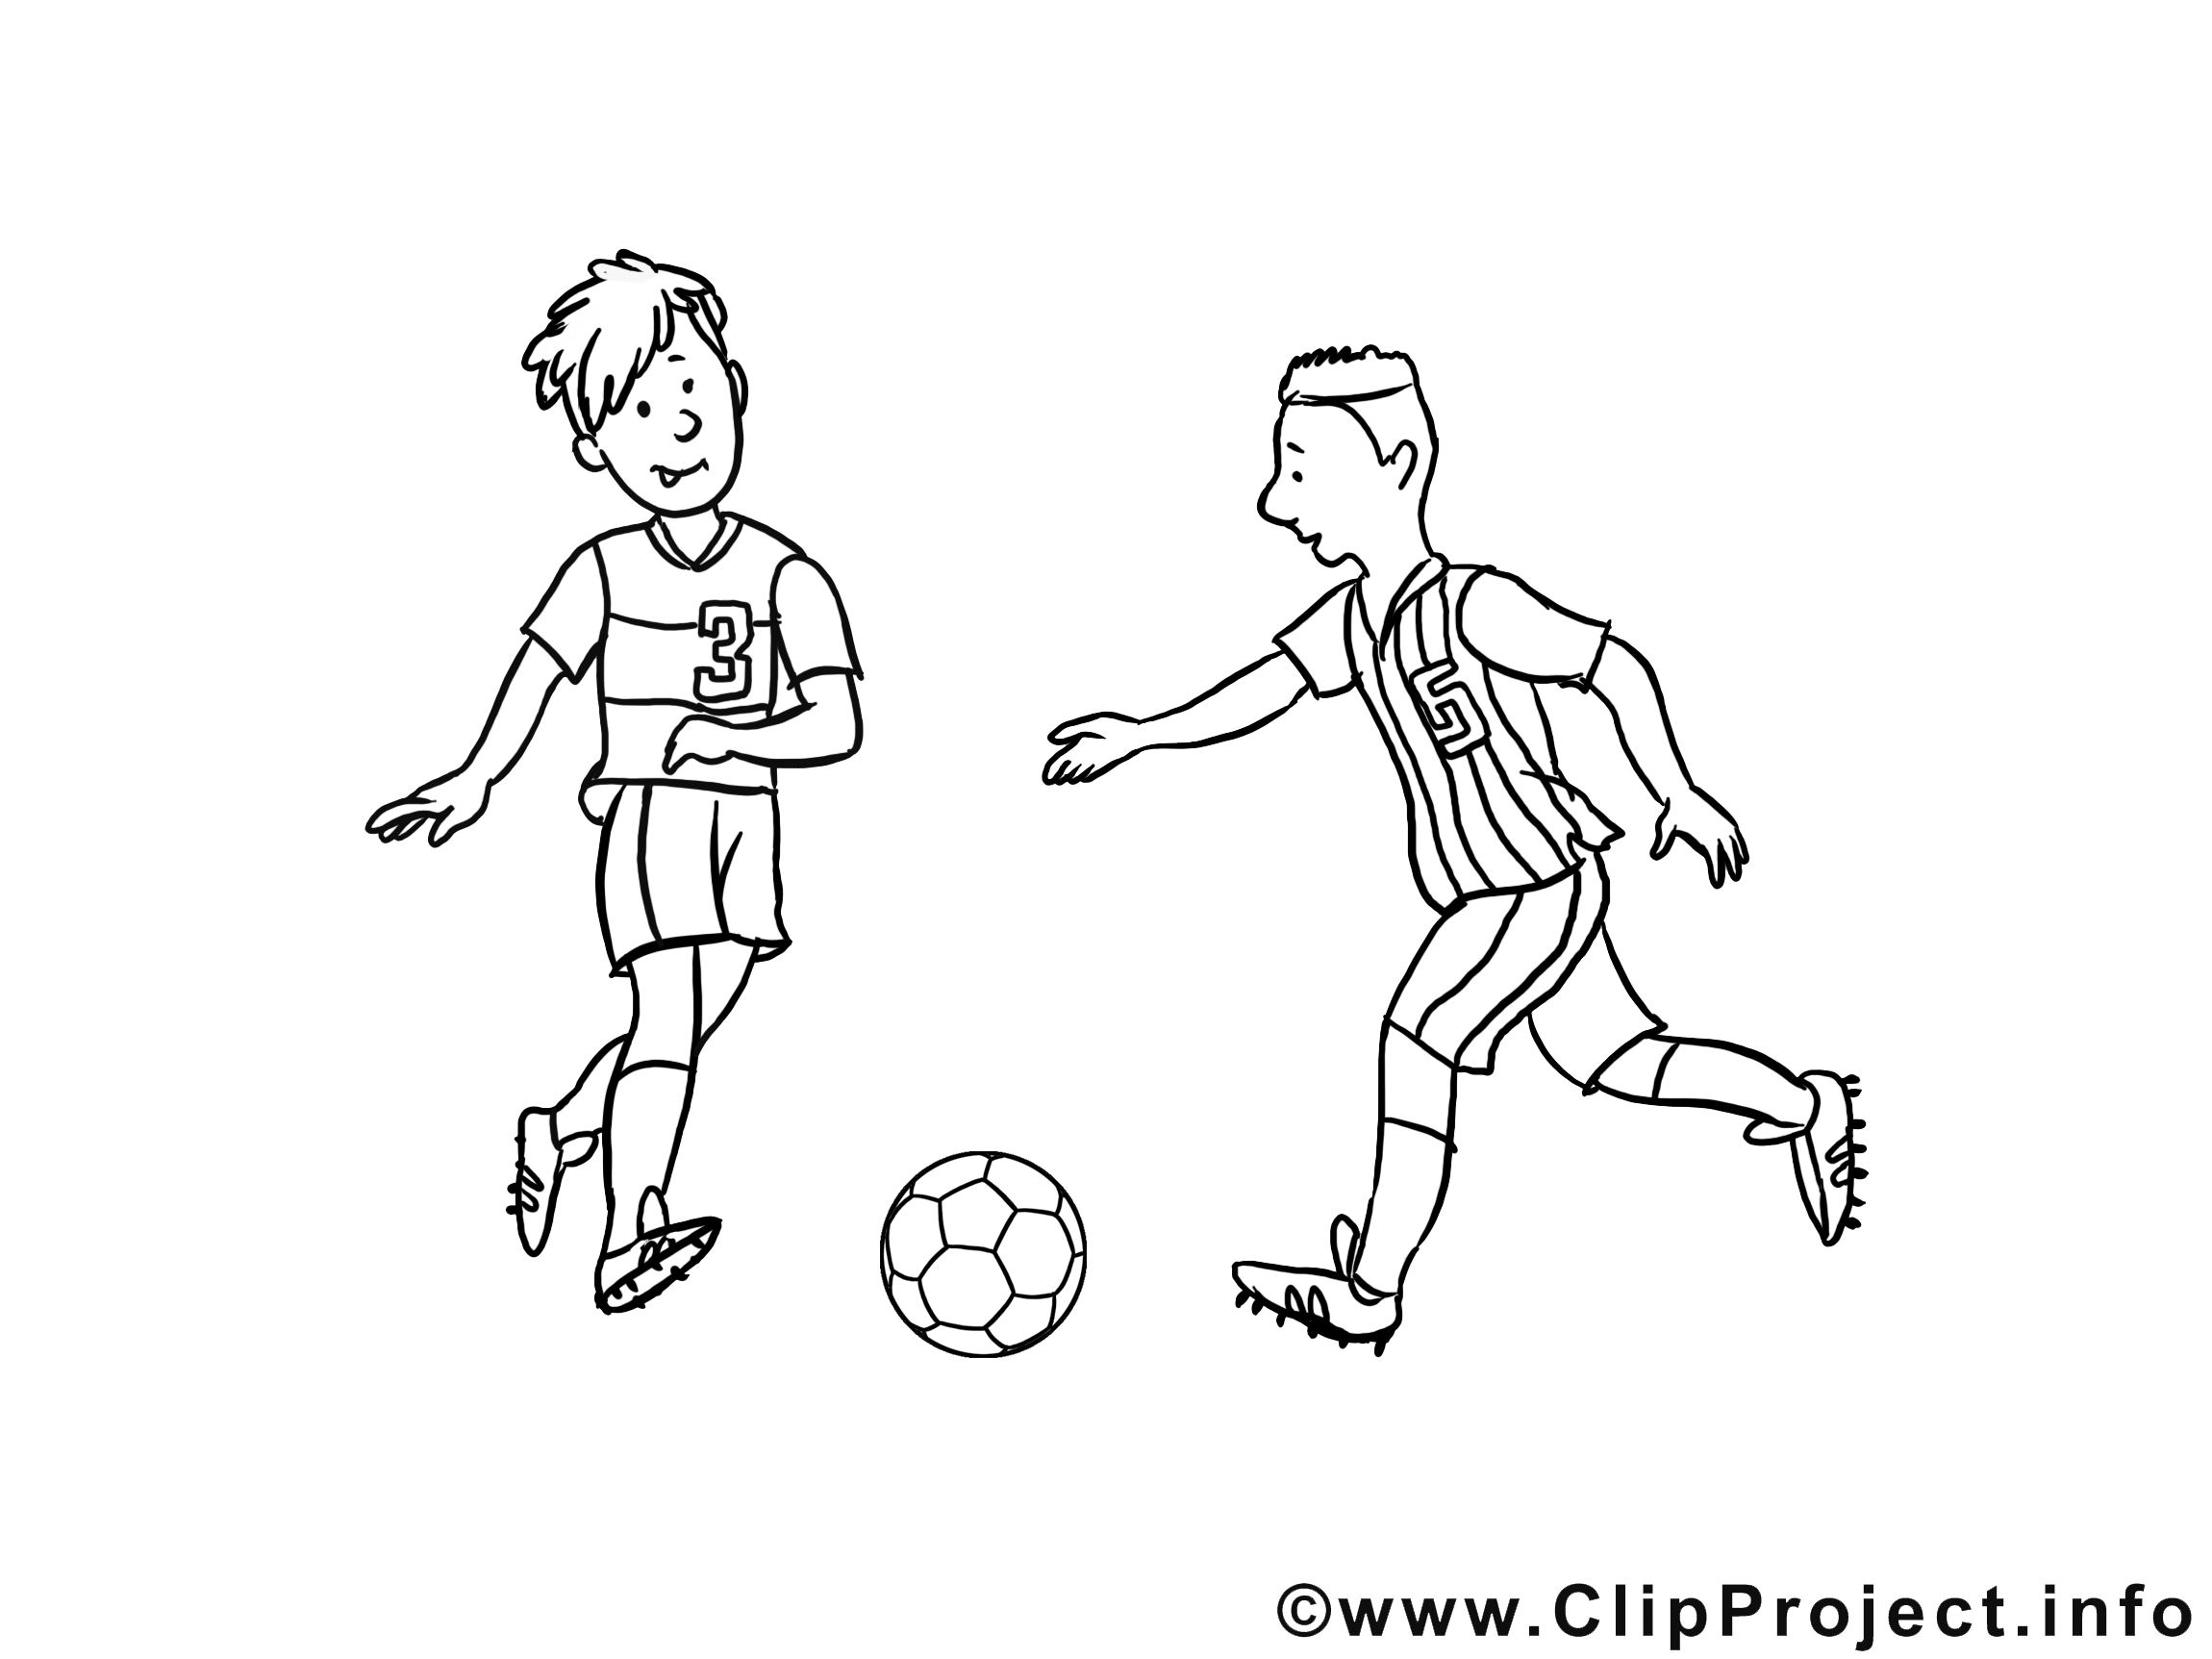 Jeu illustration – Coloriage football cliparts